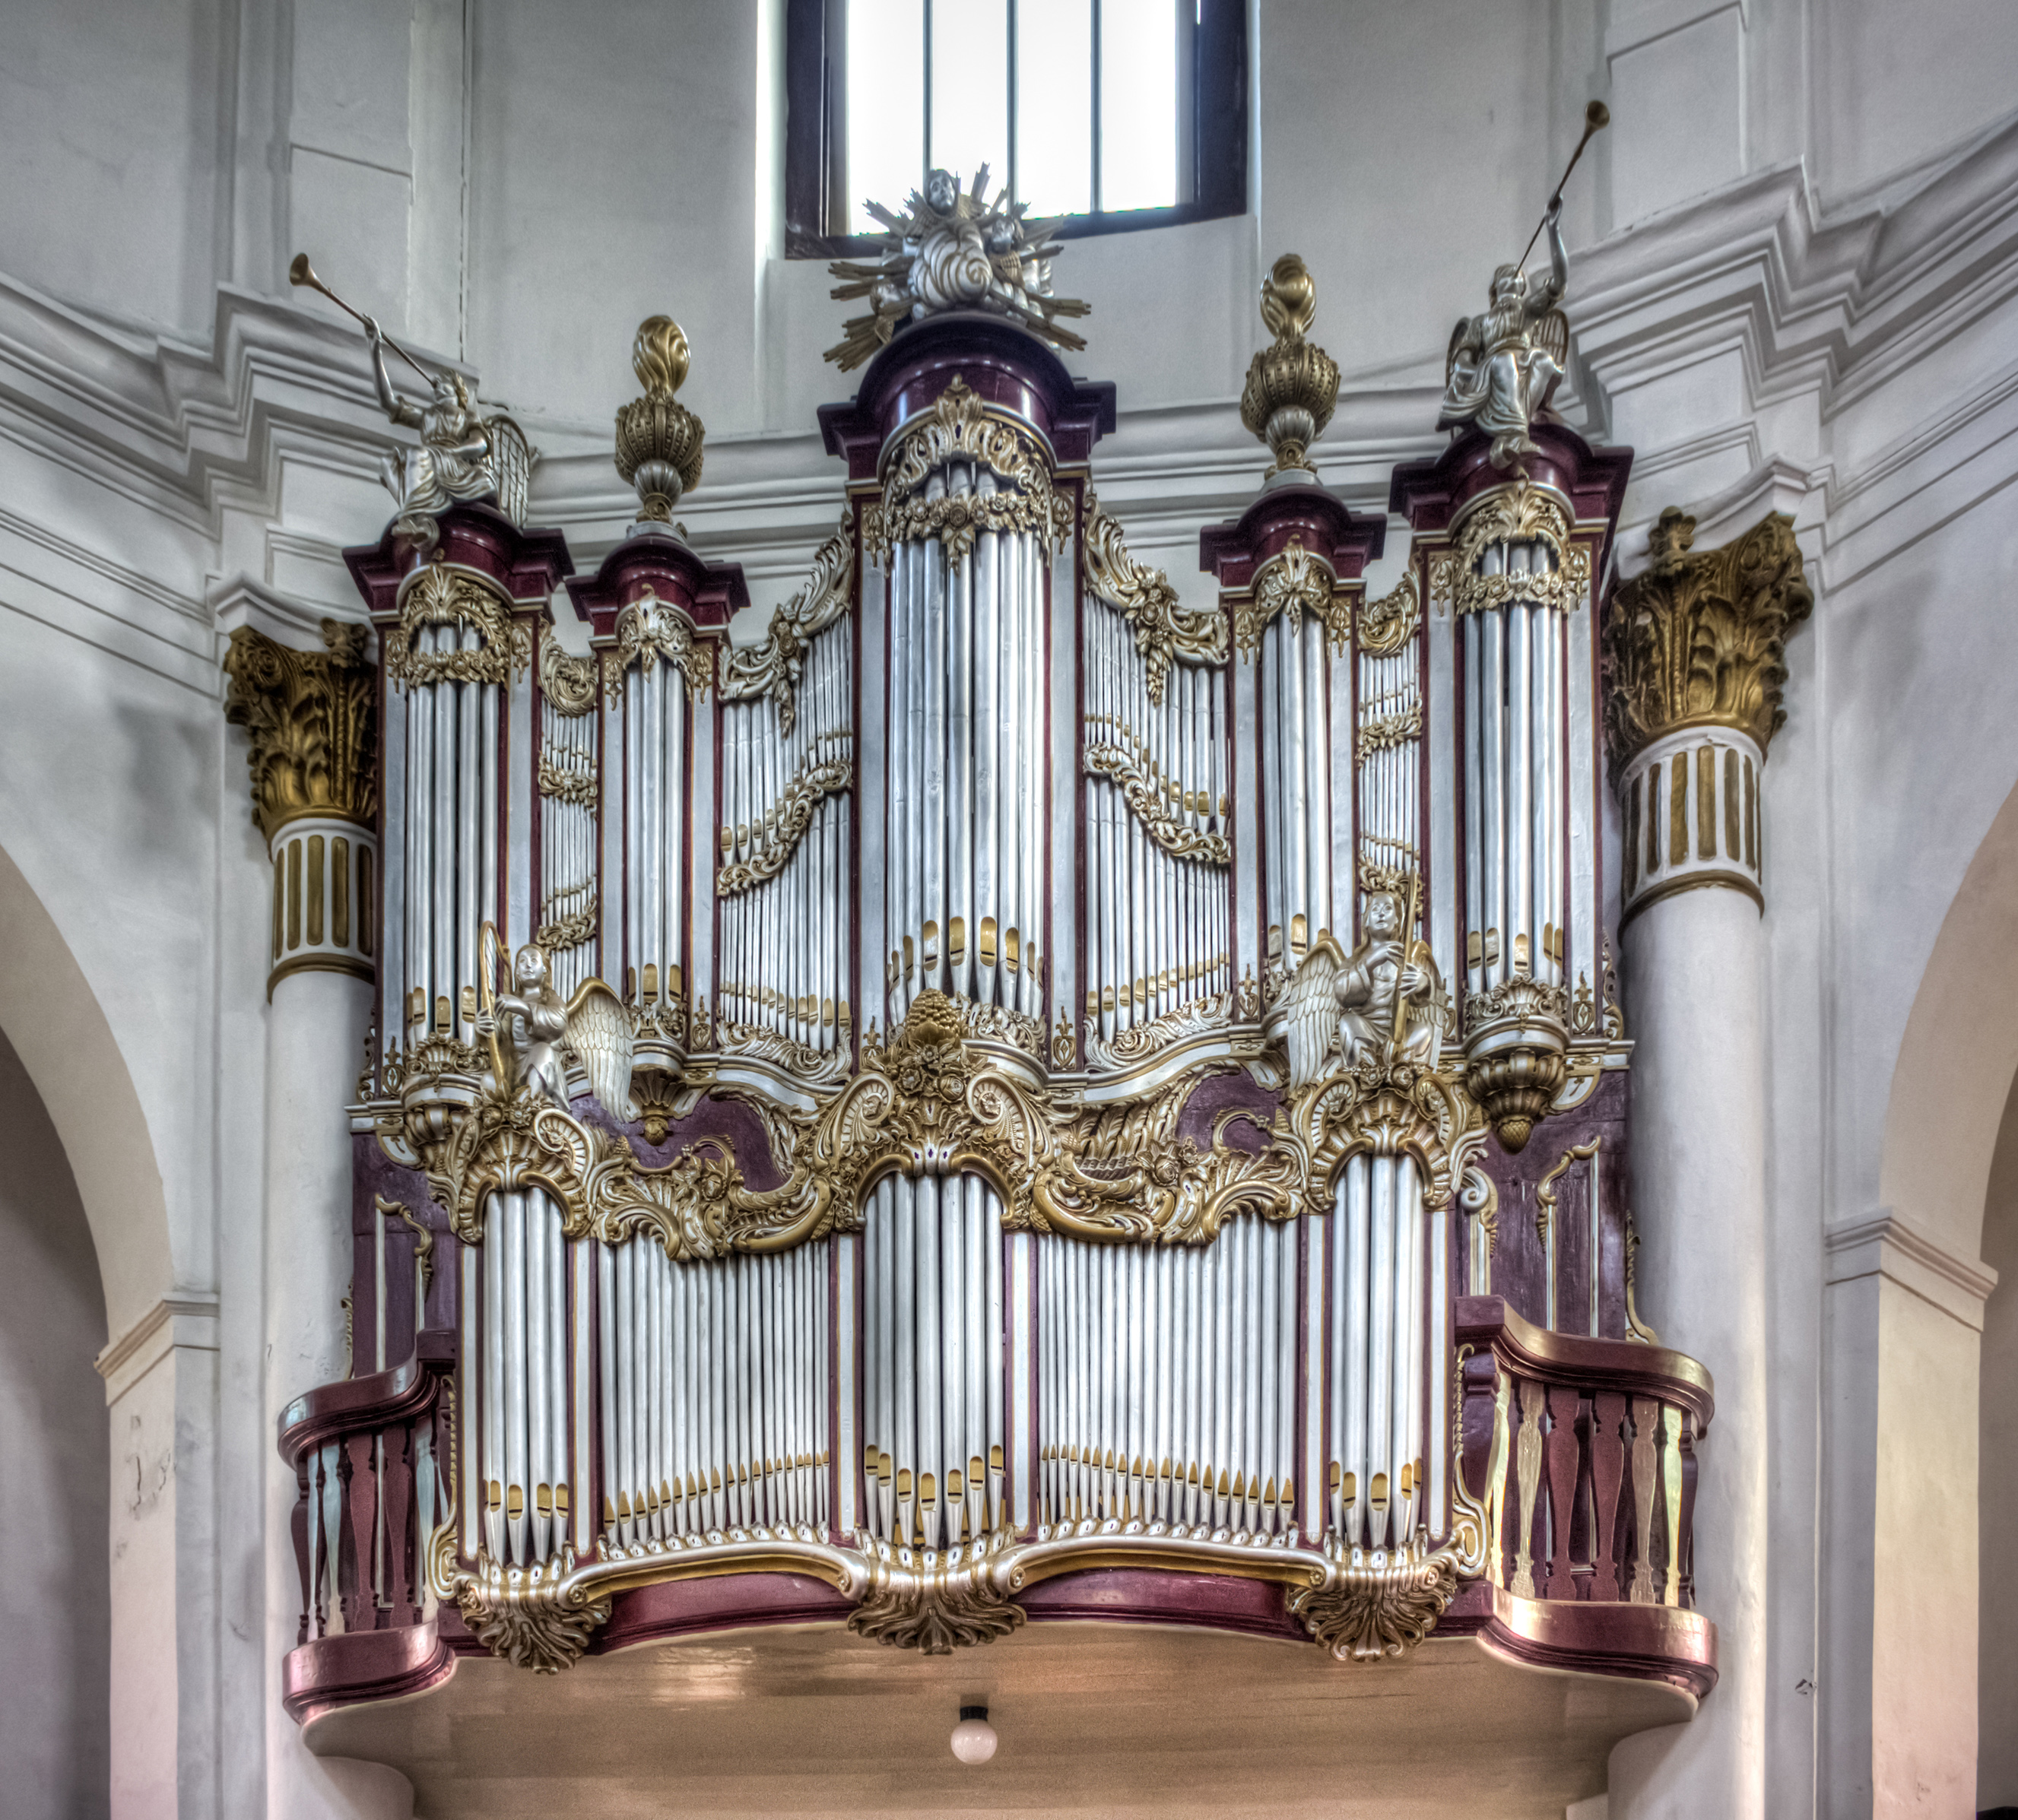 File:organ in Blenduk Church